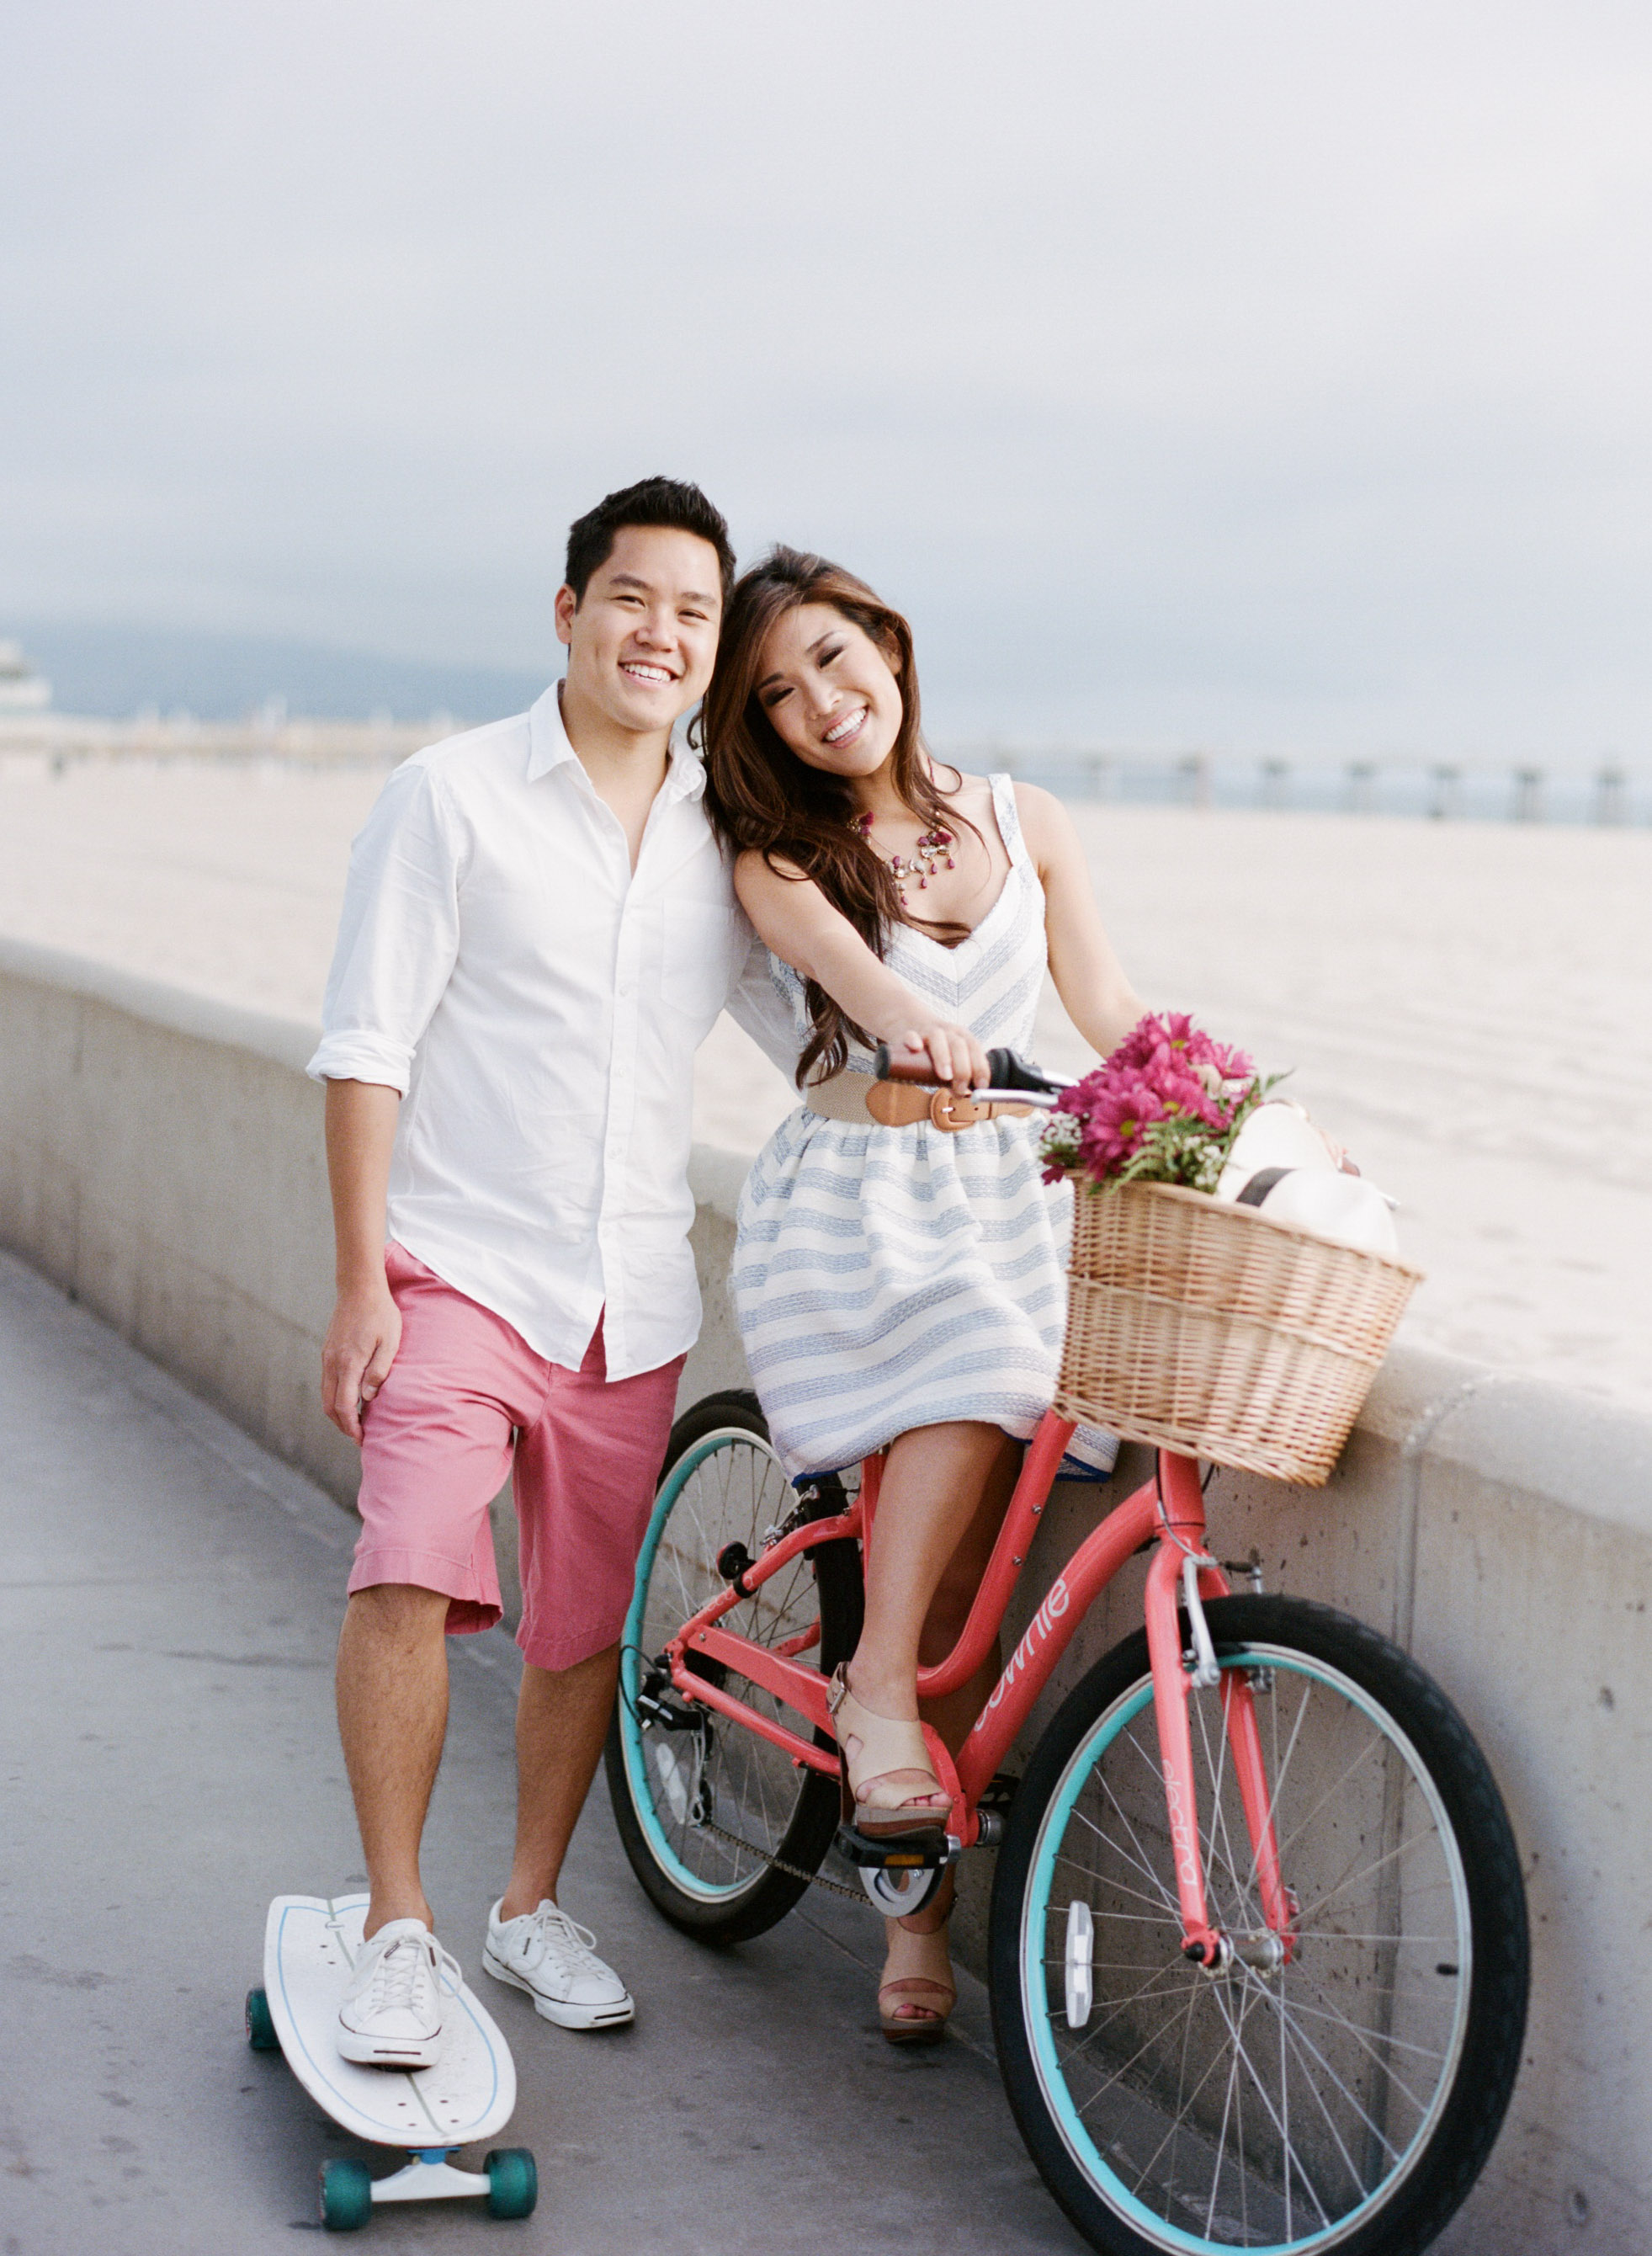 Couple with bicycle and skateboard on Hermosa Beach boardwalk during an engagment shoot with Sylvie Gil.